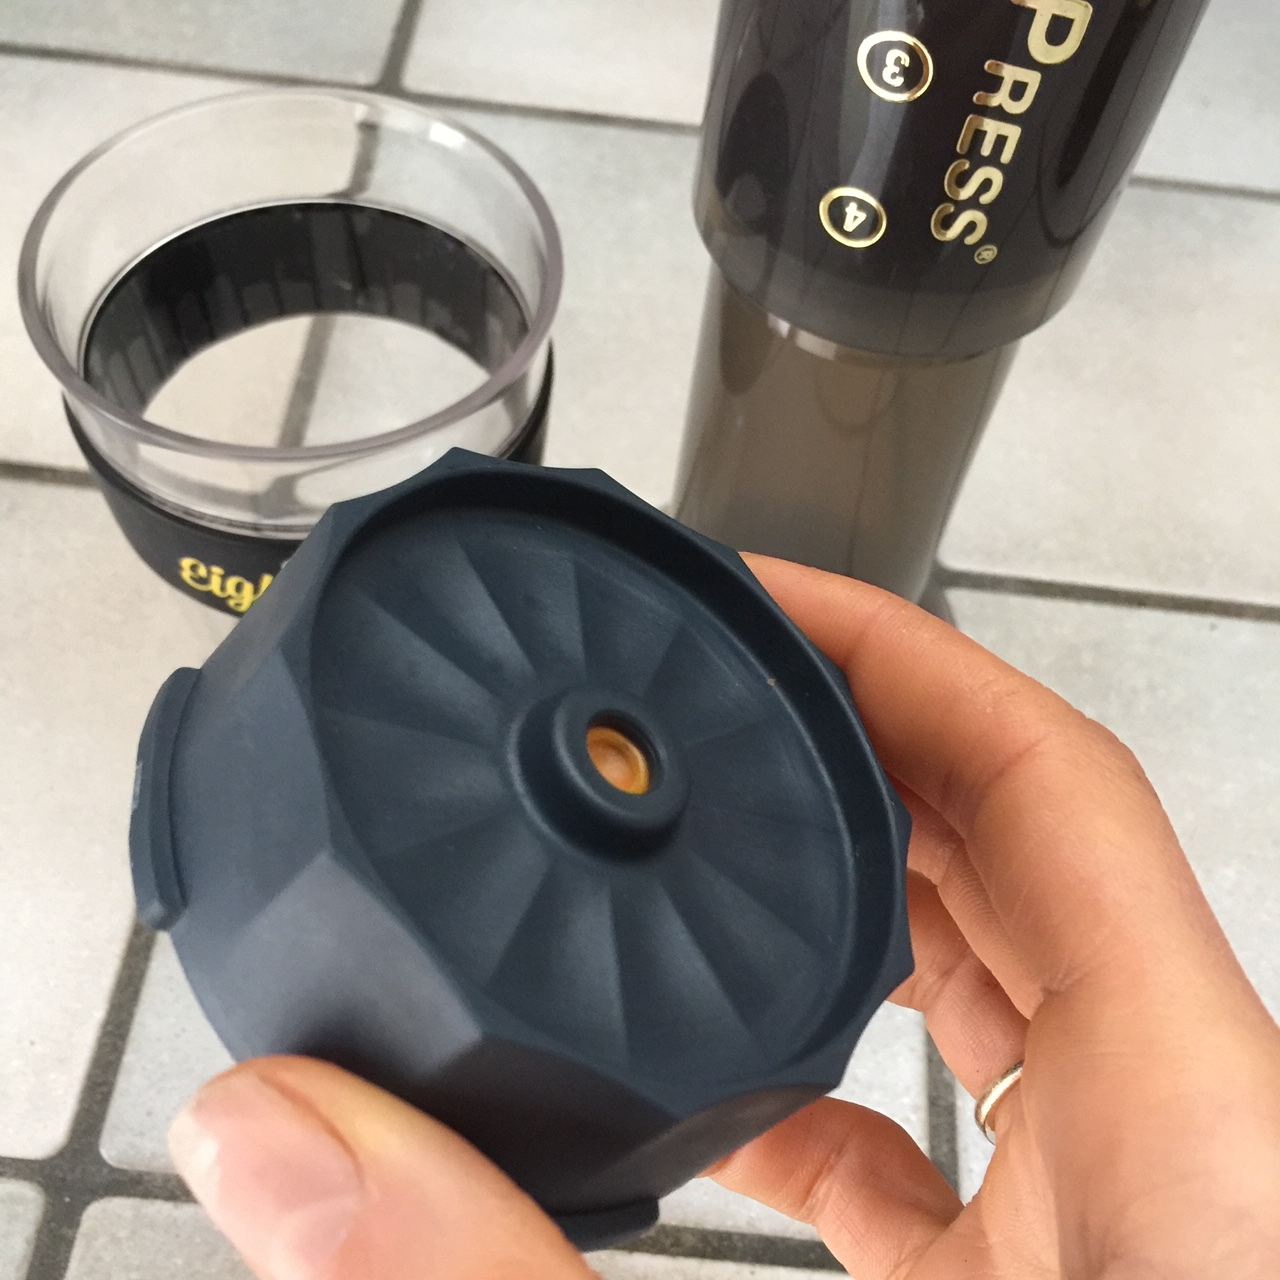 Aeropress Fellow espresso attachment from Eight ounce coffee supply and Lex Albrecht